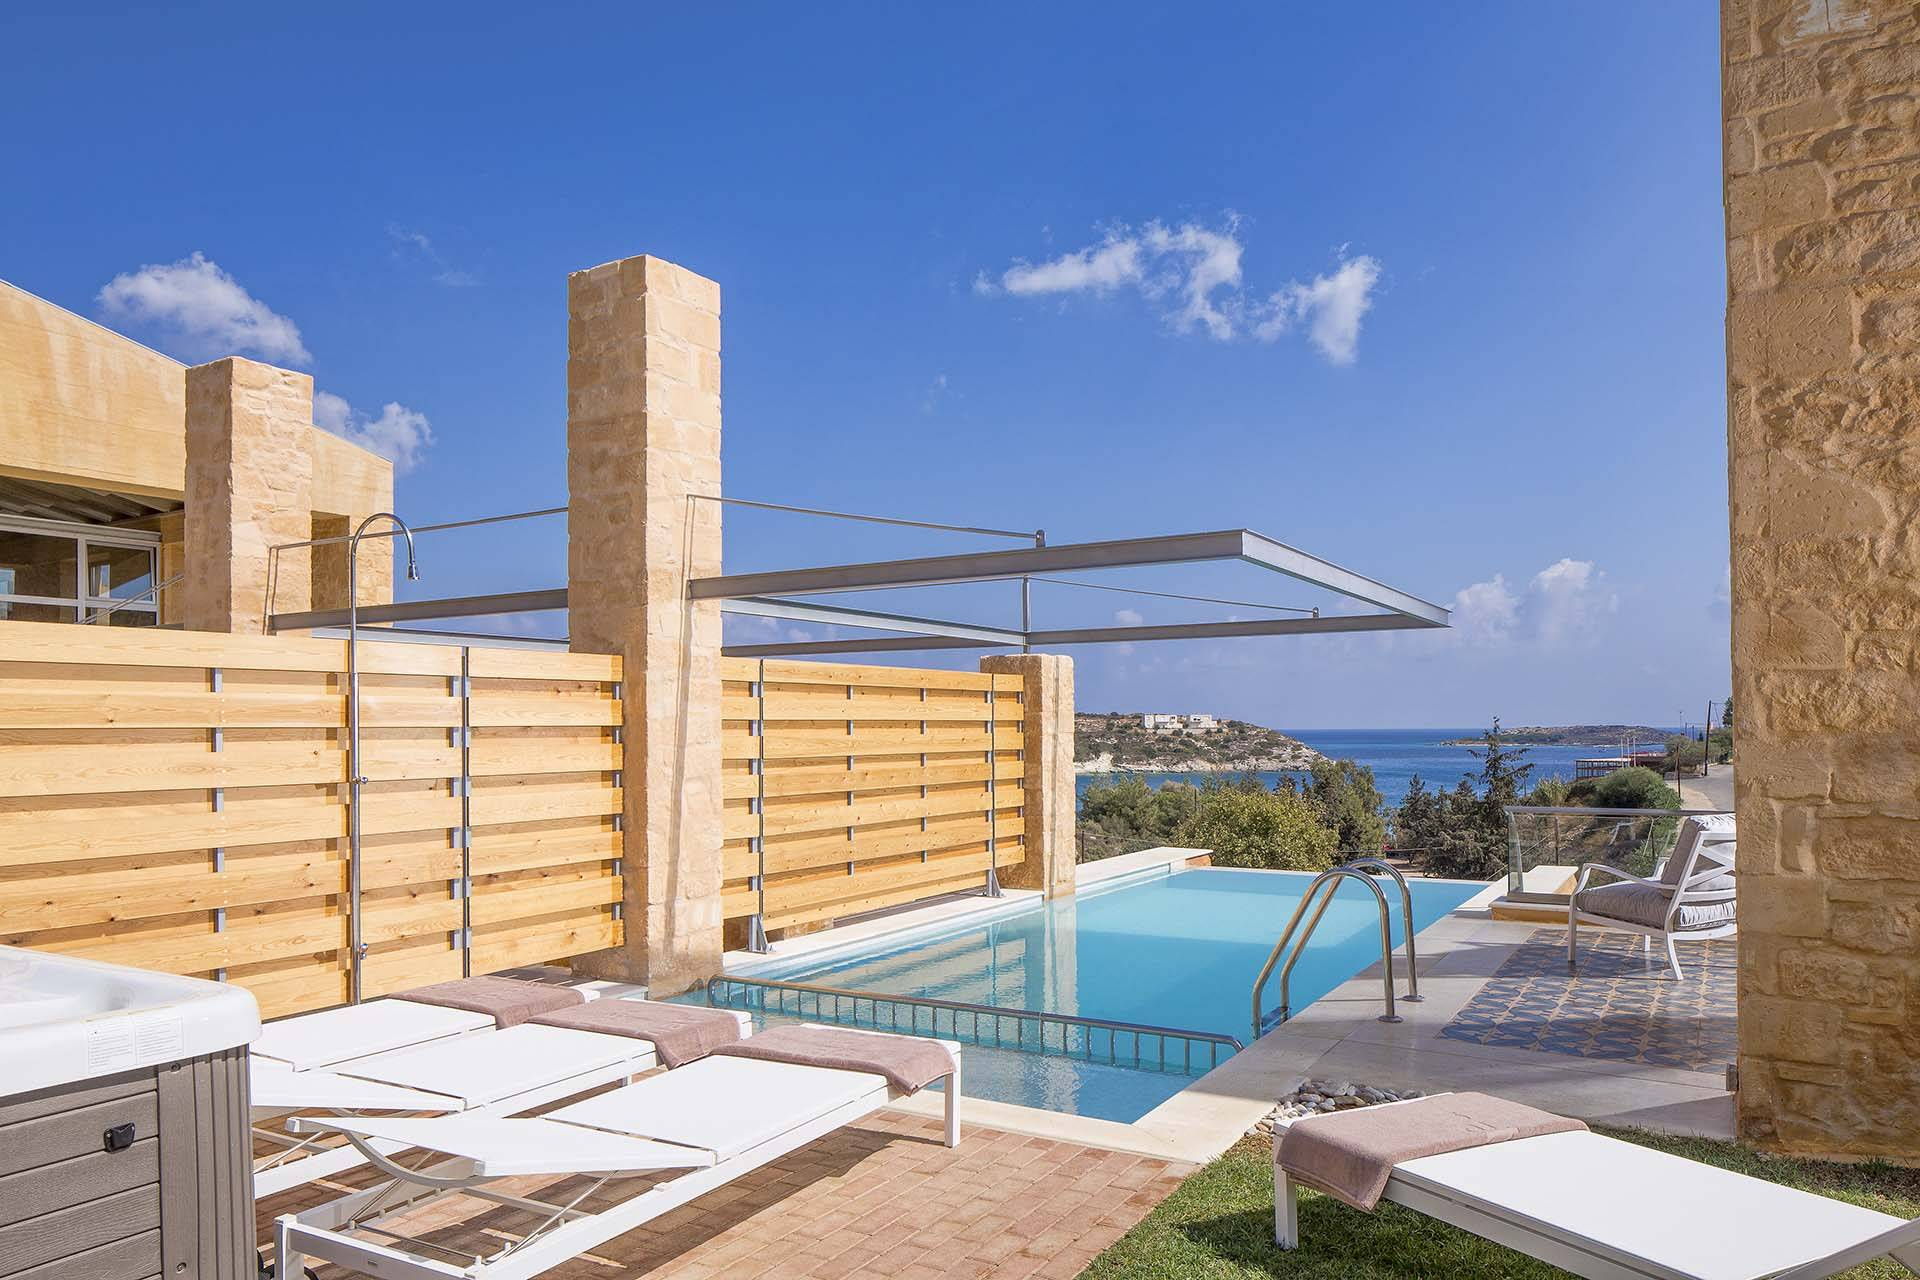 Crete luxury villa Rea in Loutraki